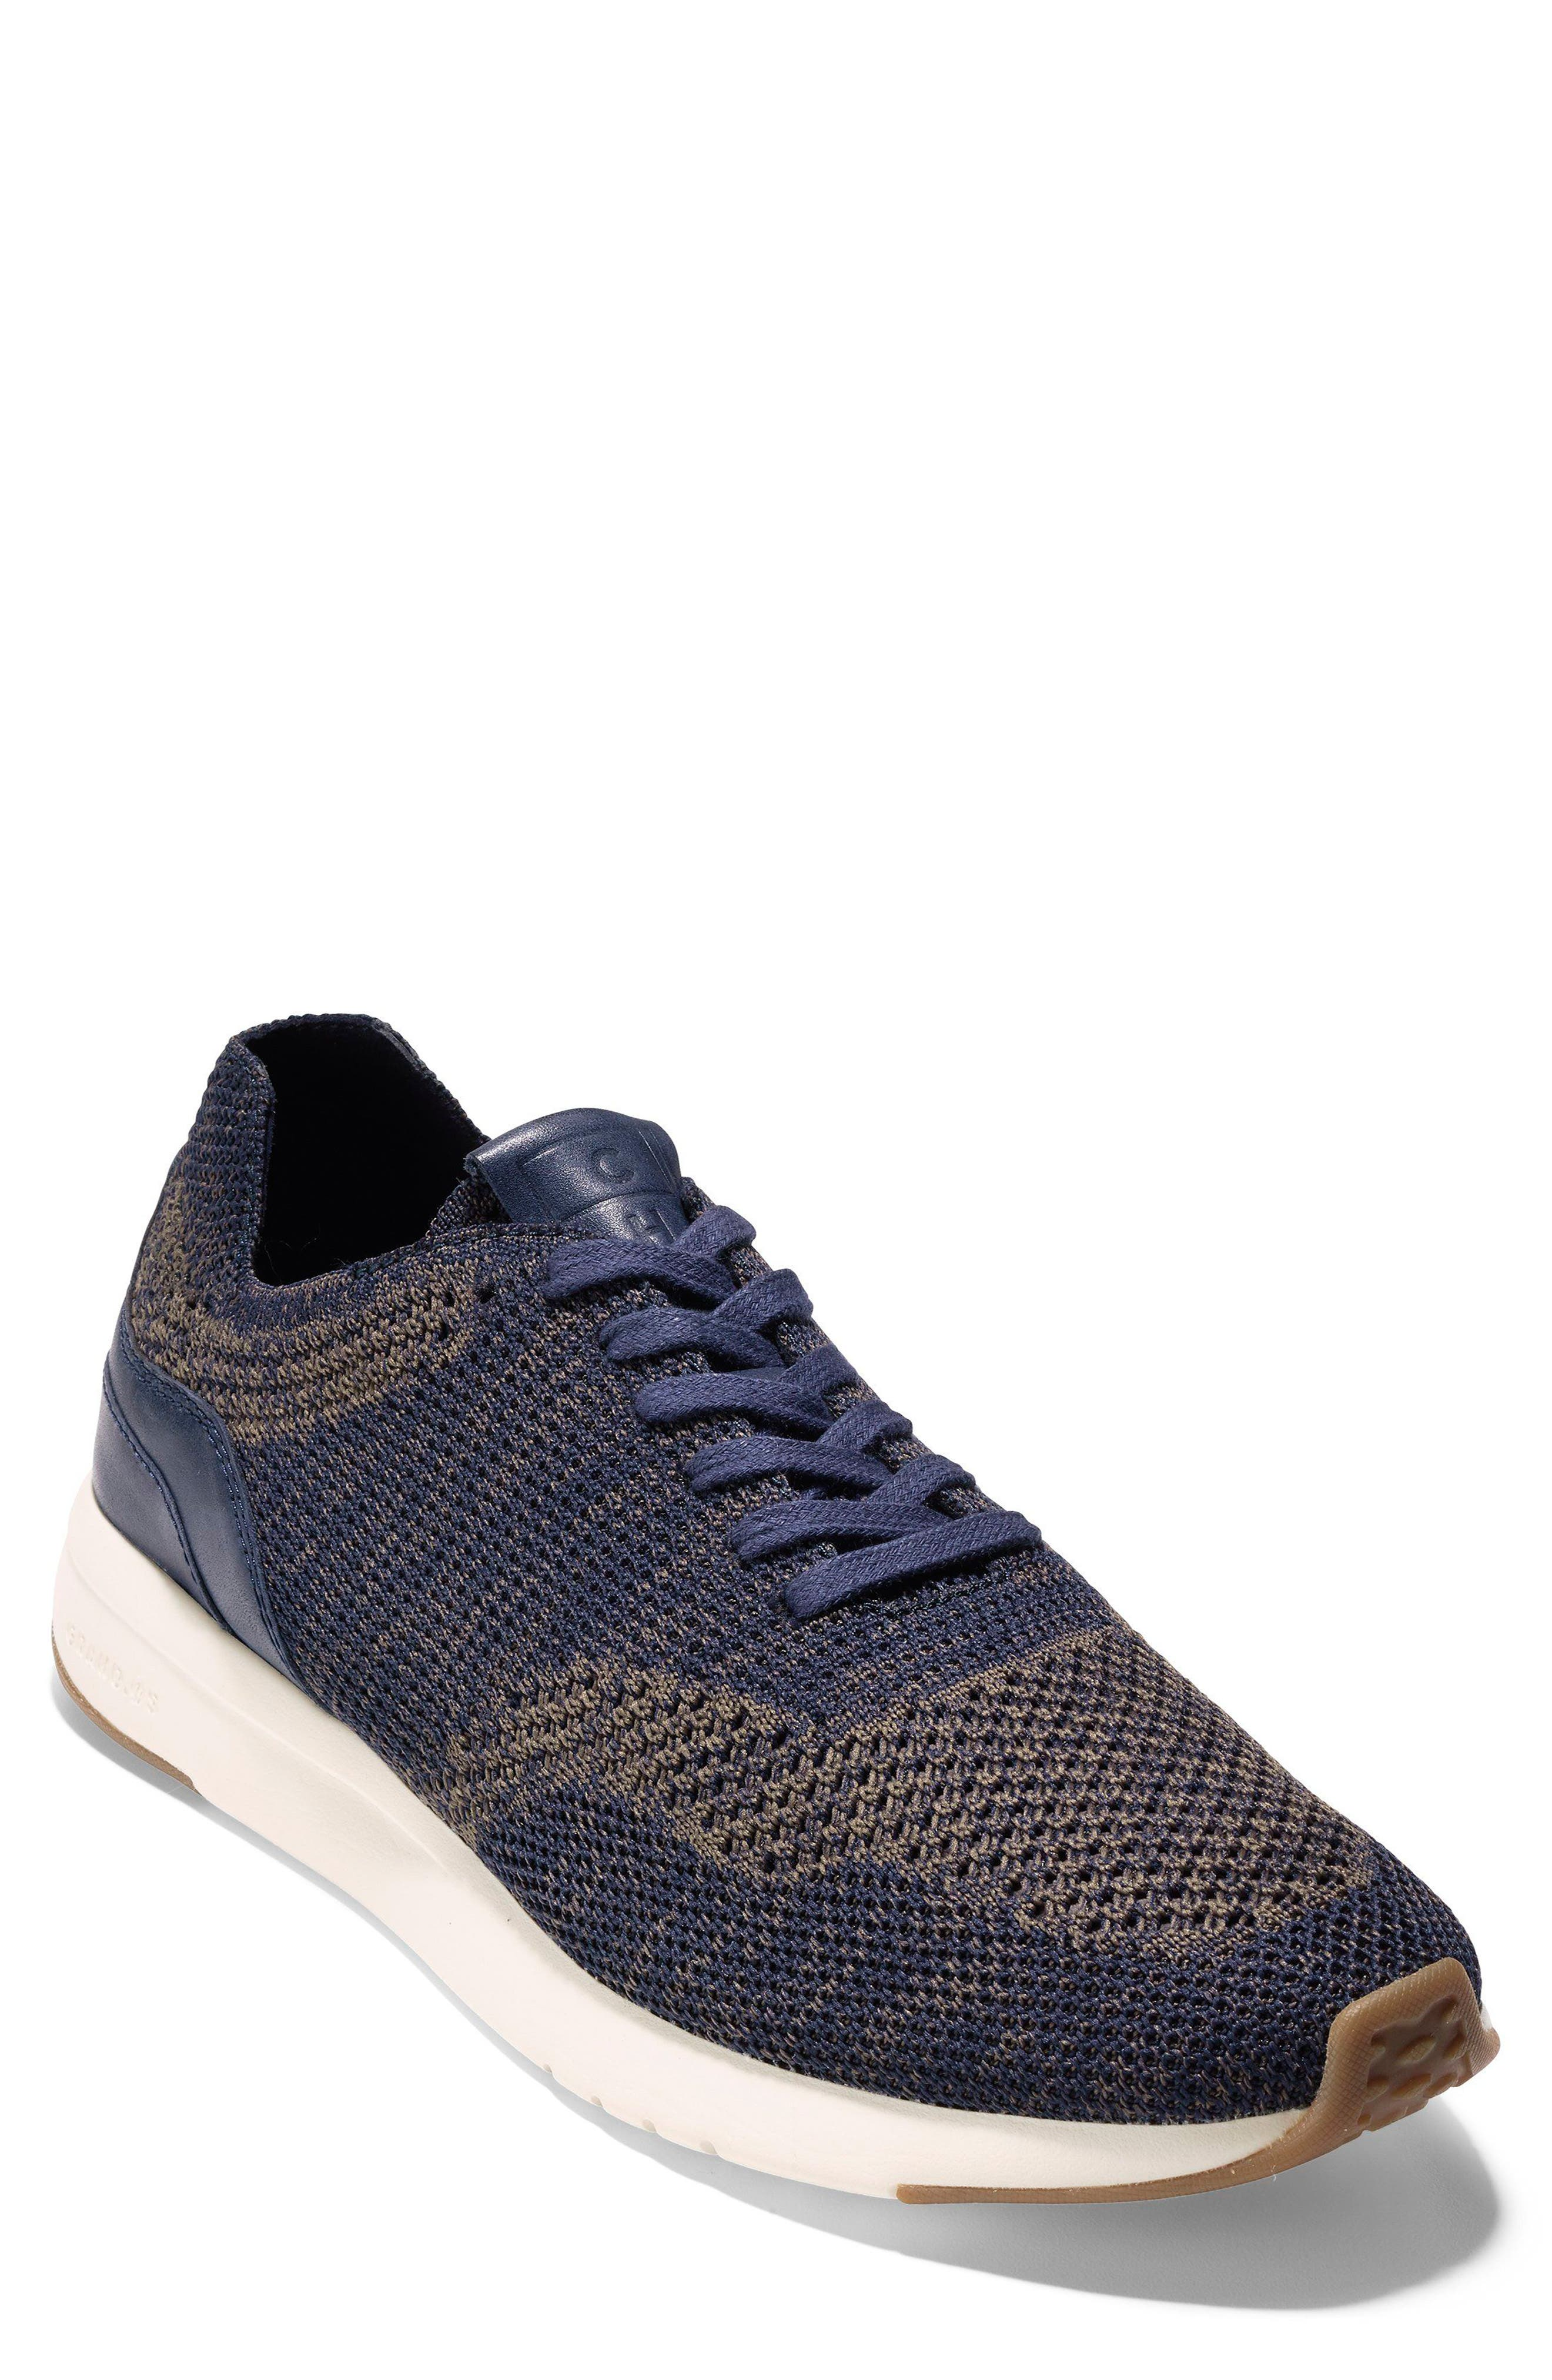 GrandPro Runner Stitchlite Sneaker,                             Main thumbnail 1, color,                             Navy Peony / Morel